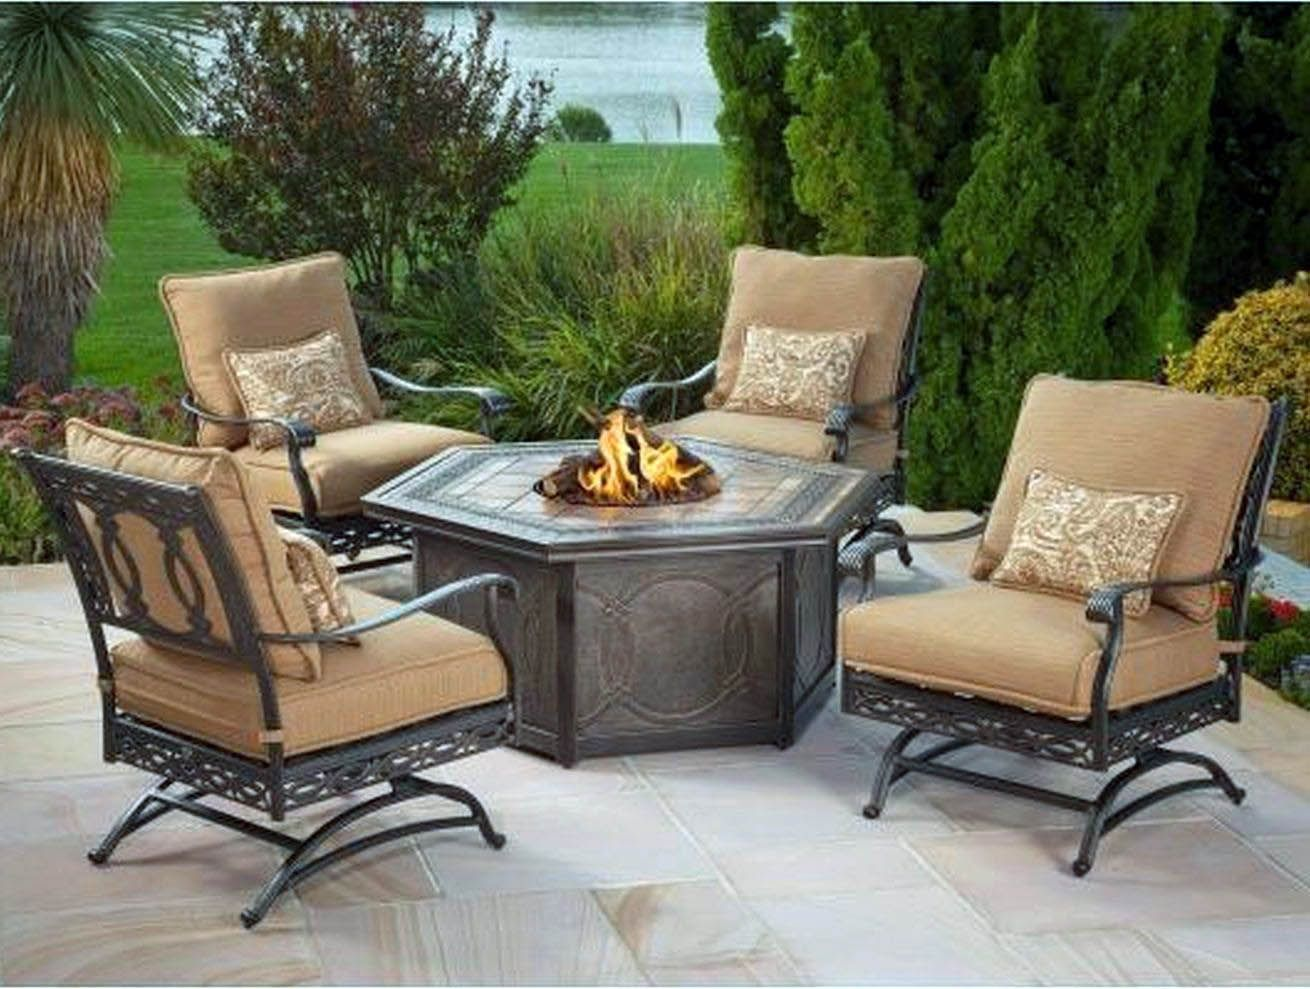 Cool Clearance On Patio Furniture That